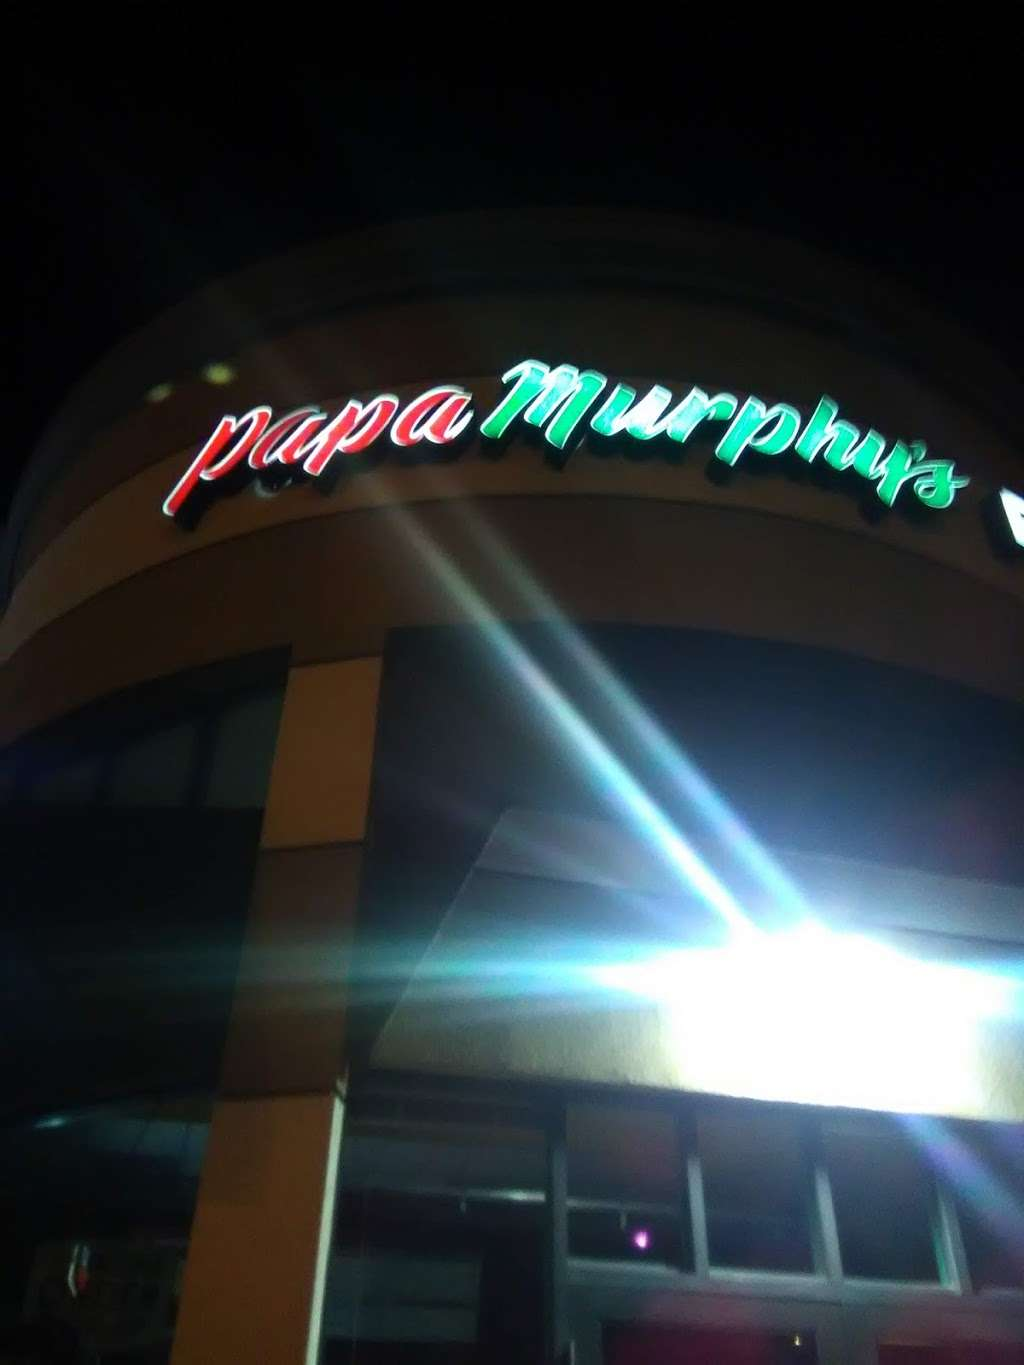 Papa Murphys Take N Bake Pizza - meal takeaway  | Photo 8 of 9 | Address: 965 Lakeville St Suite C8, Petaluma, CA 94952, USA | Phone: (707) 765-1011